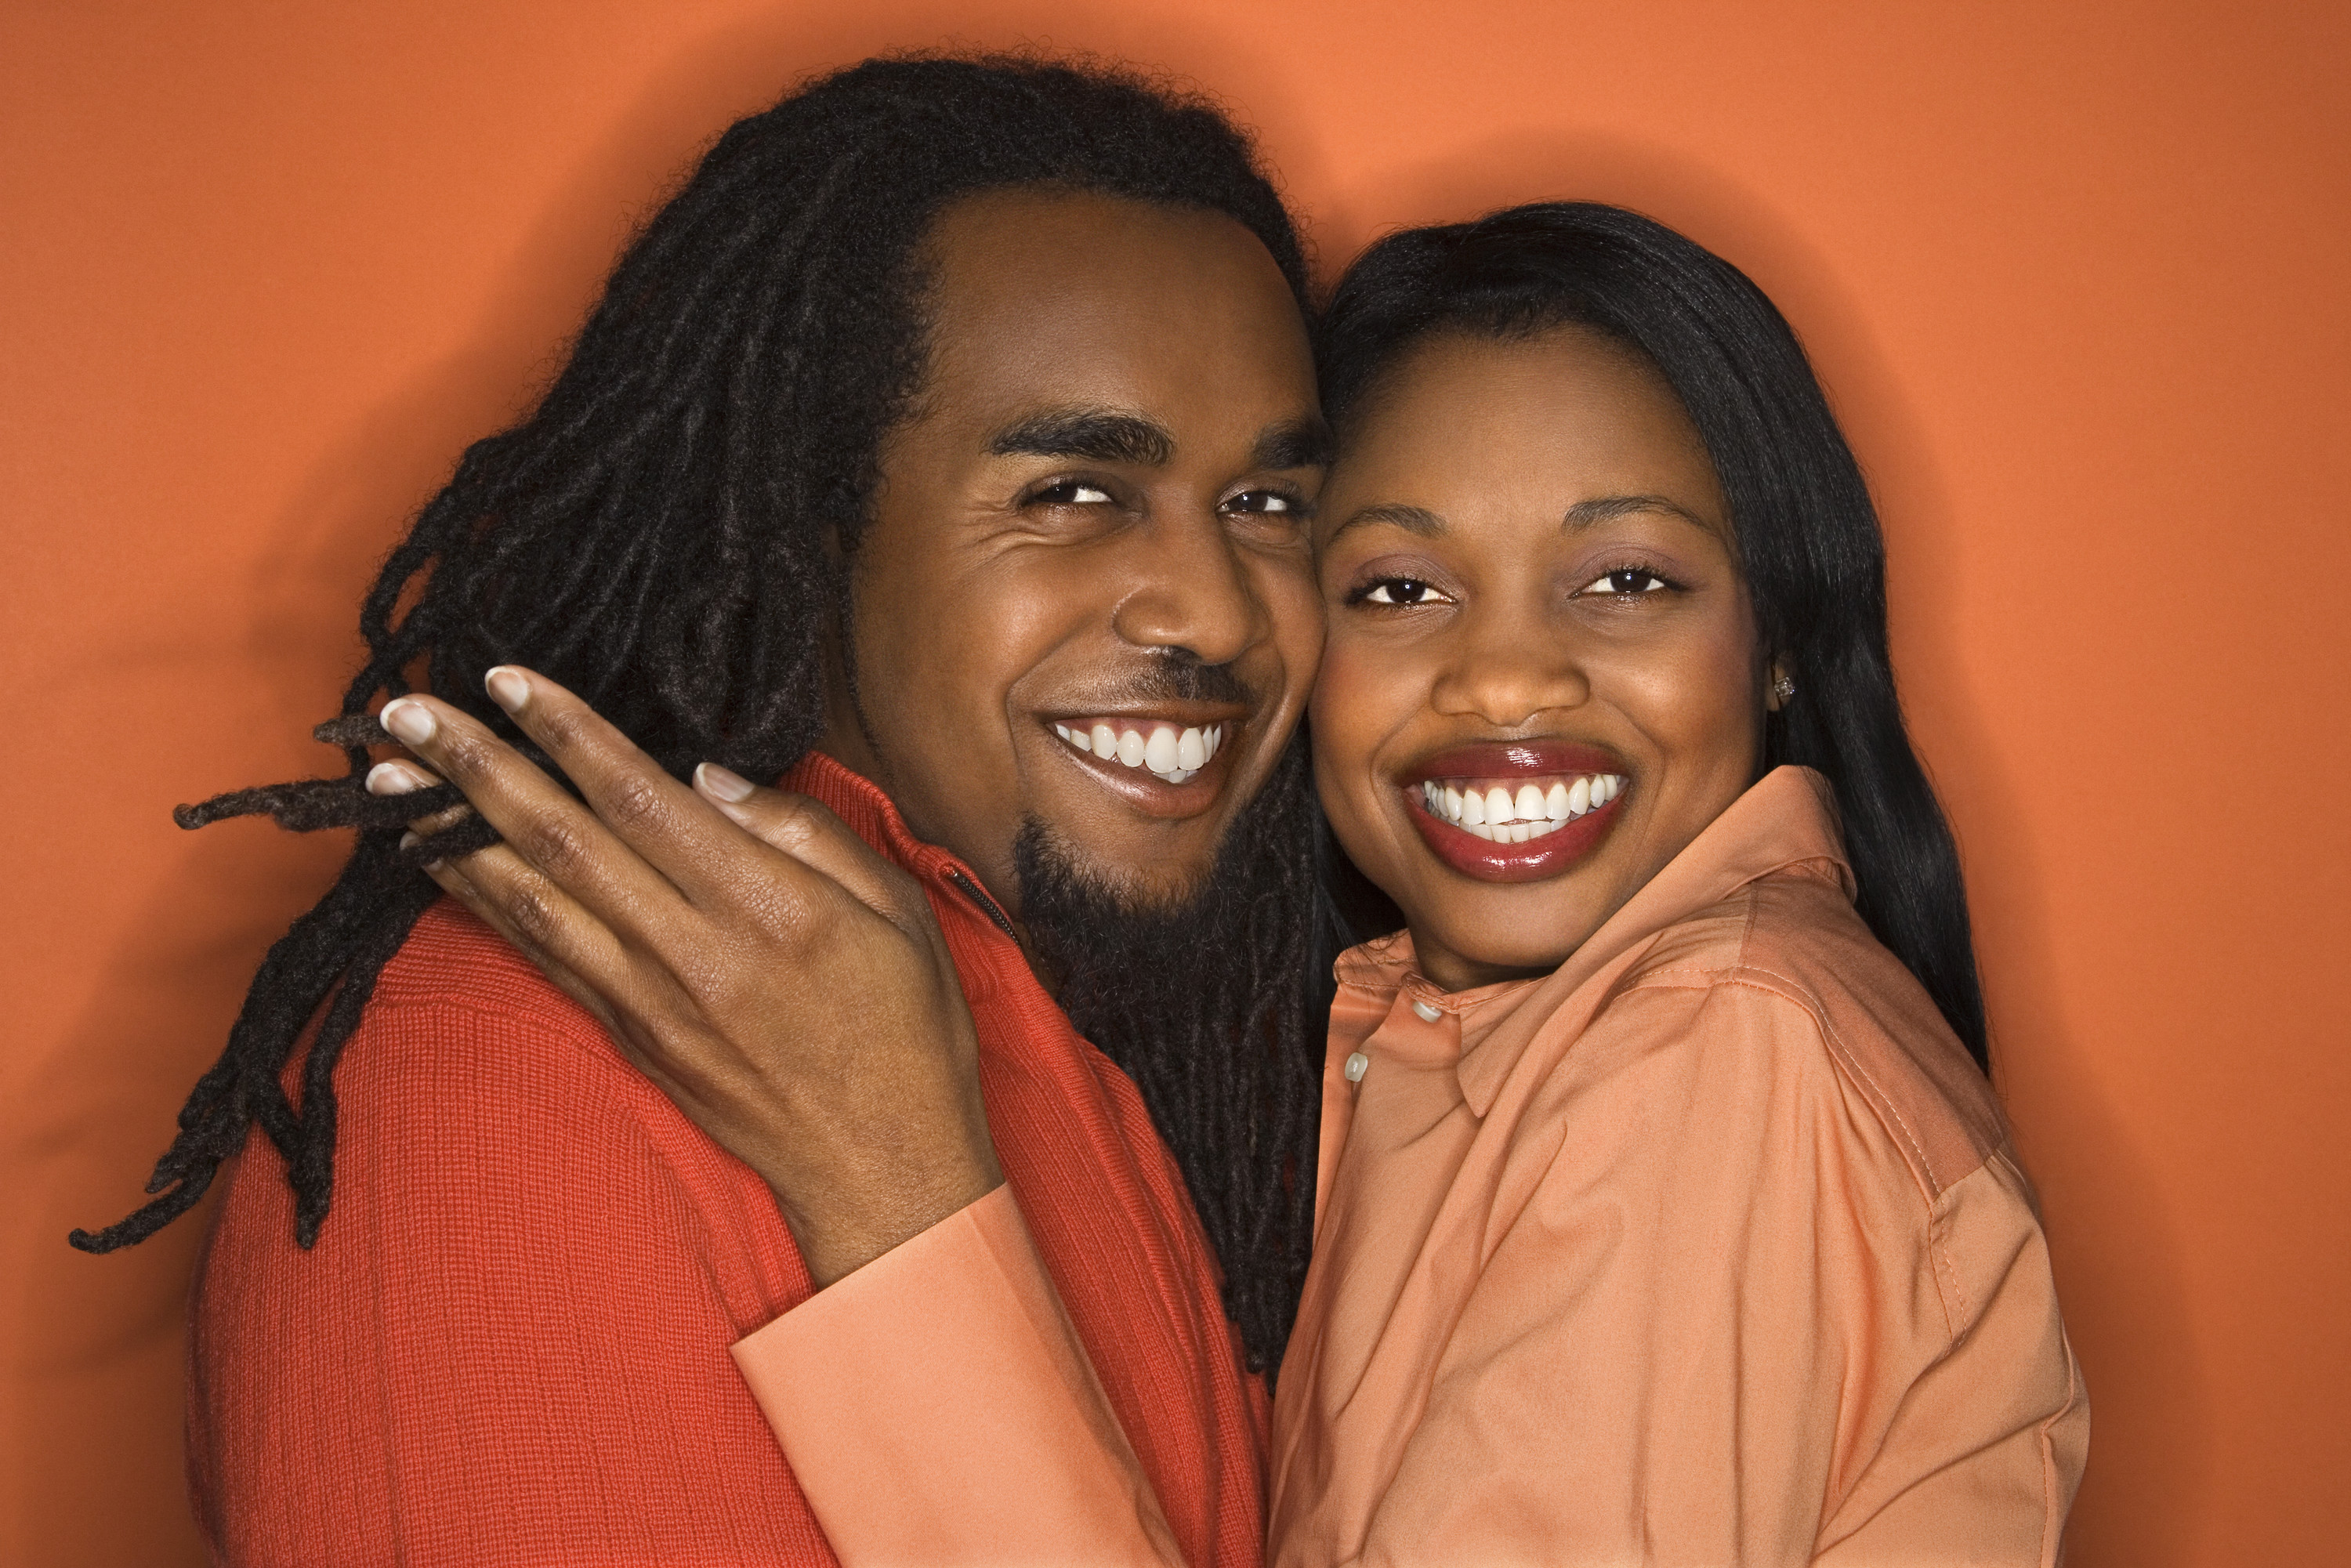 suttsu black dating site What is blackplanetlove blackplanetlove is the black dating site to find romance browse, search and connect with thousands of black singles for free with so many new members joining each day, there's always an opportunity to find new love.